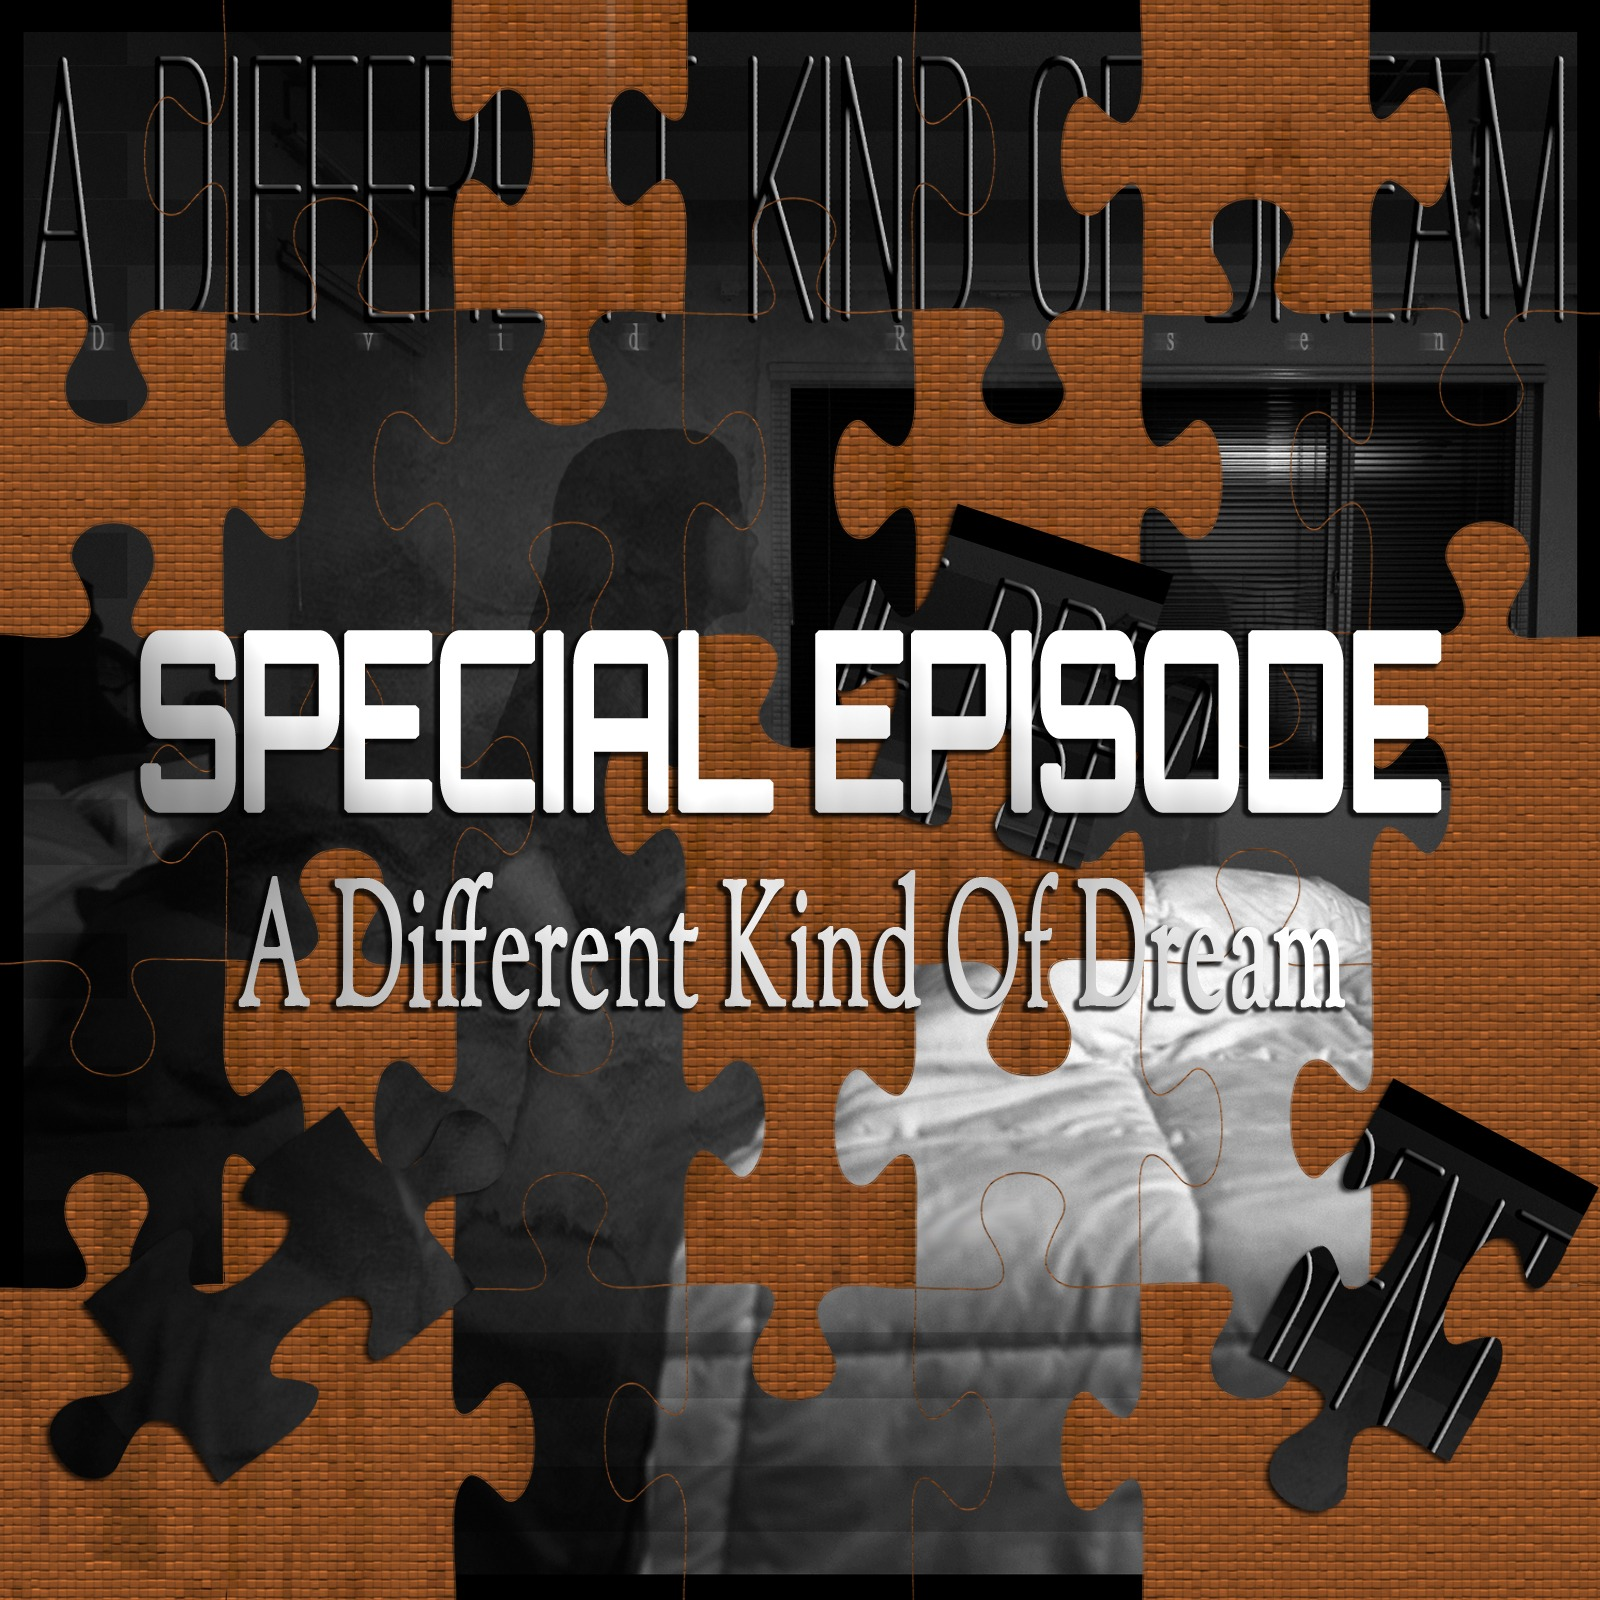 A Different Kind Of Dream (Special Episode)